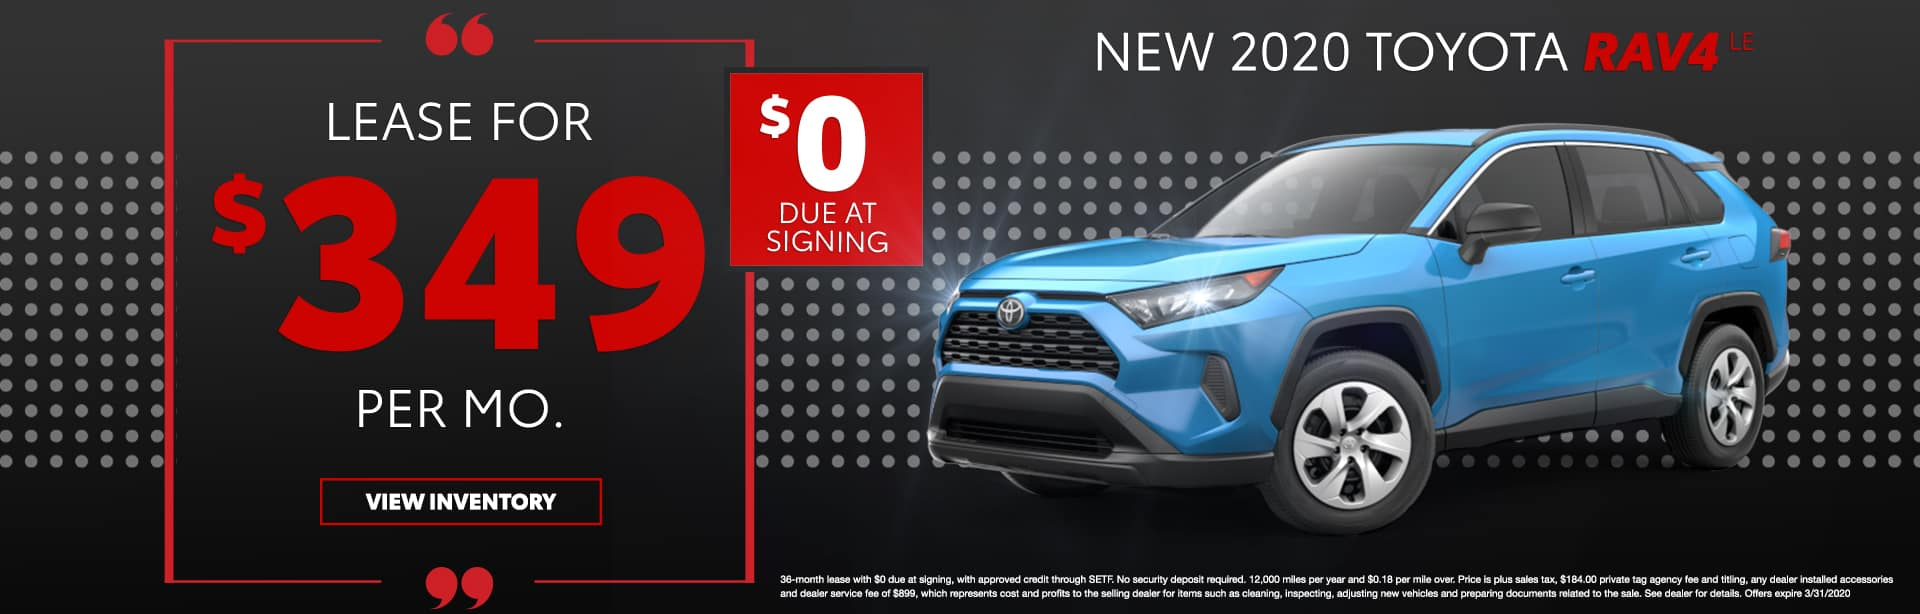 New 2020 Toyota RAV4 LE | Lease For $349 Per Mo | $0 Due At Signing